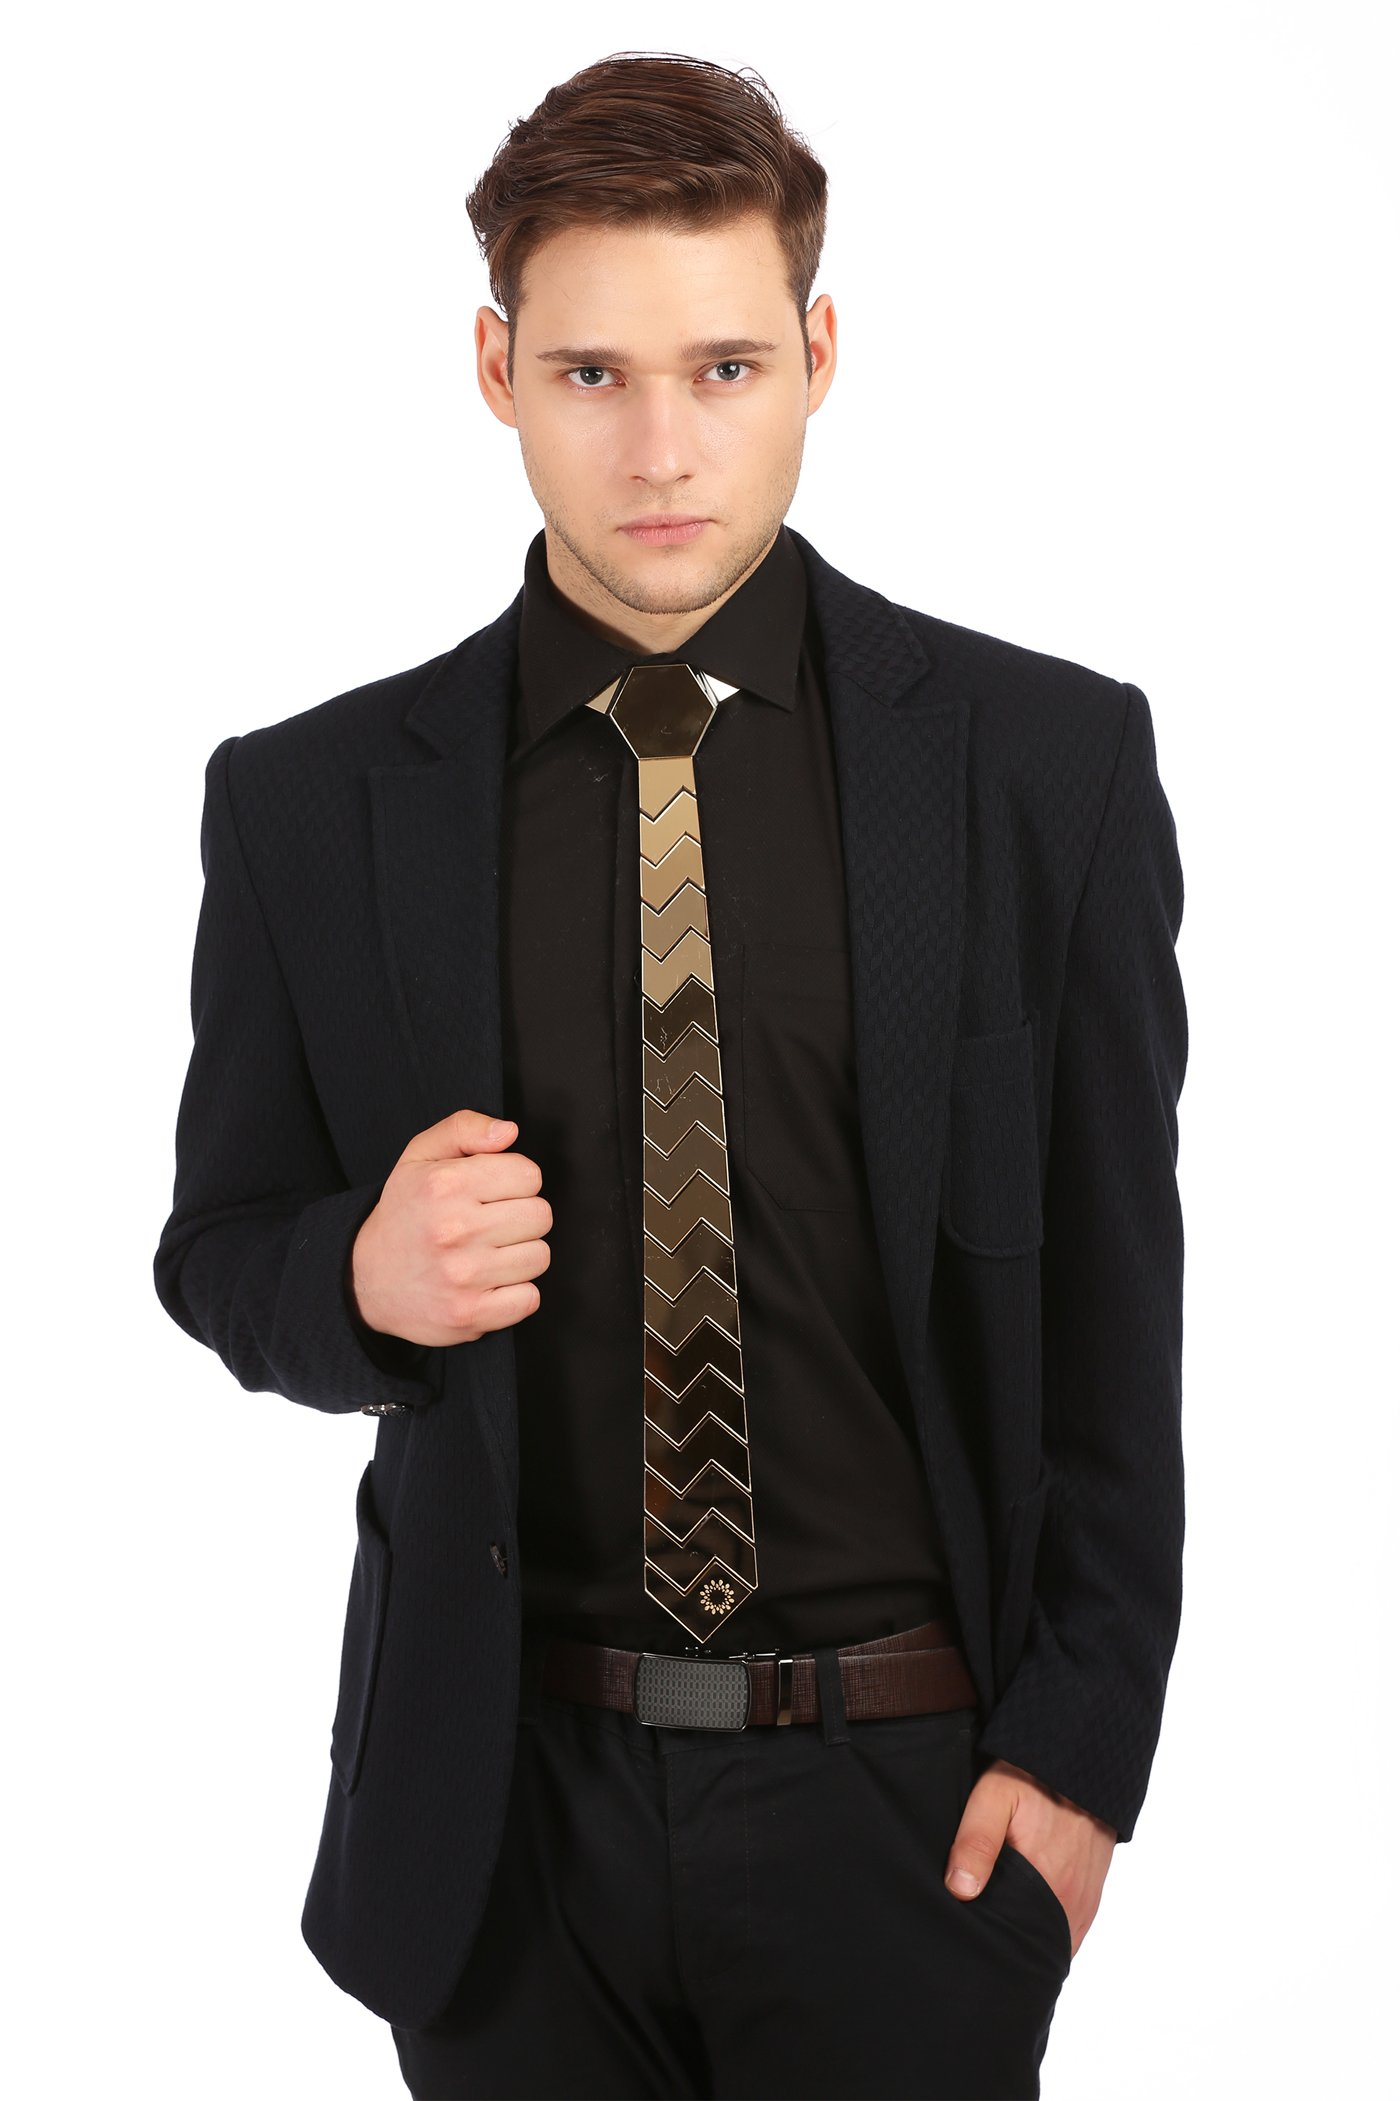 The Grand Slant Tech Tie